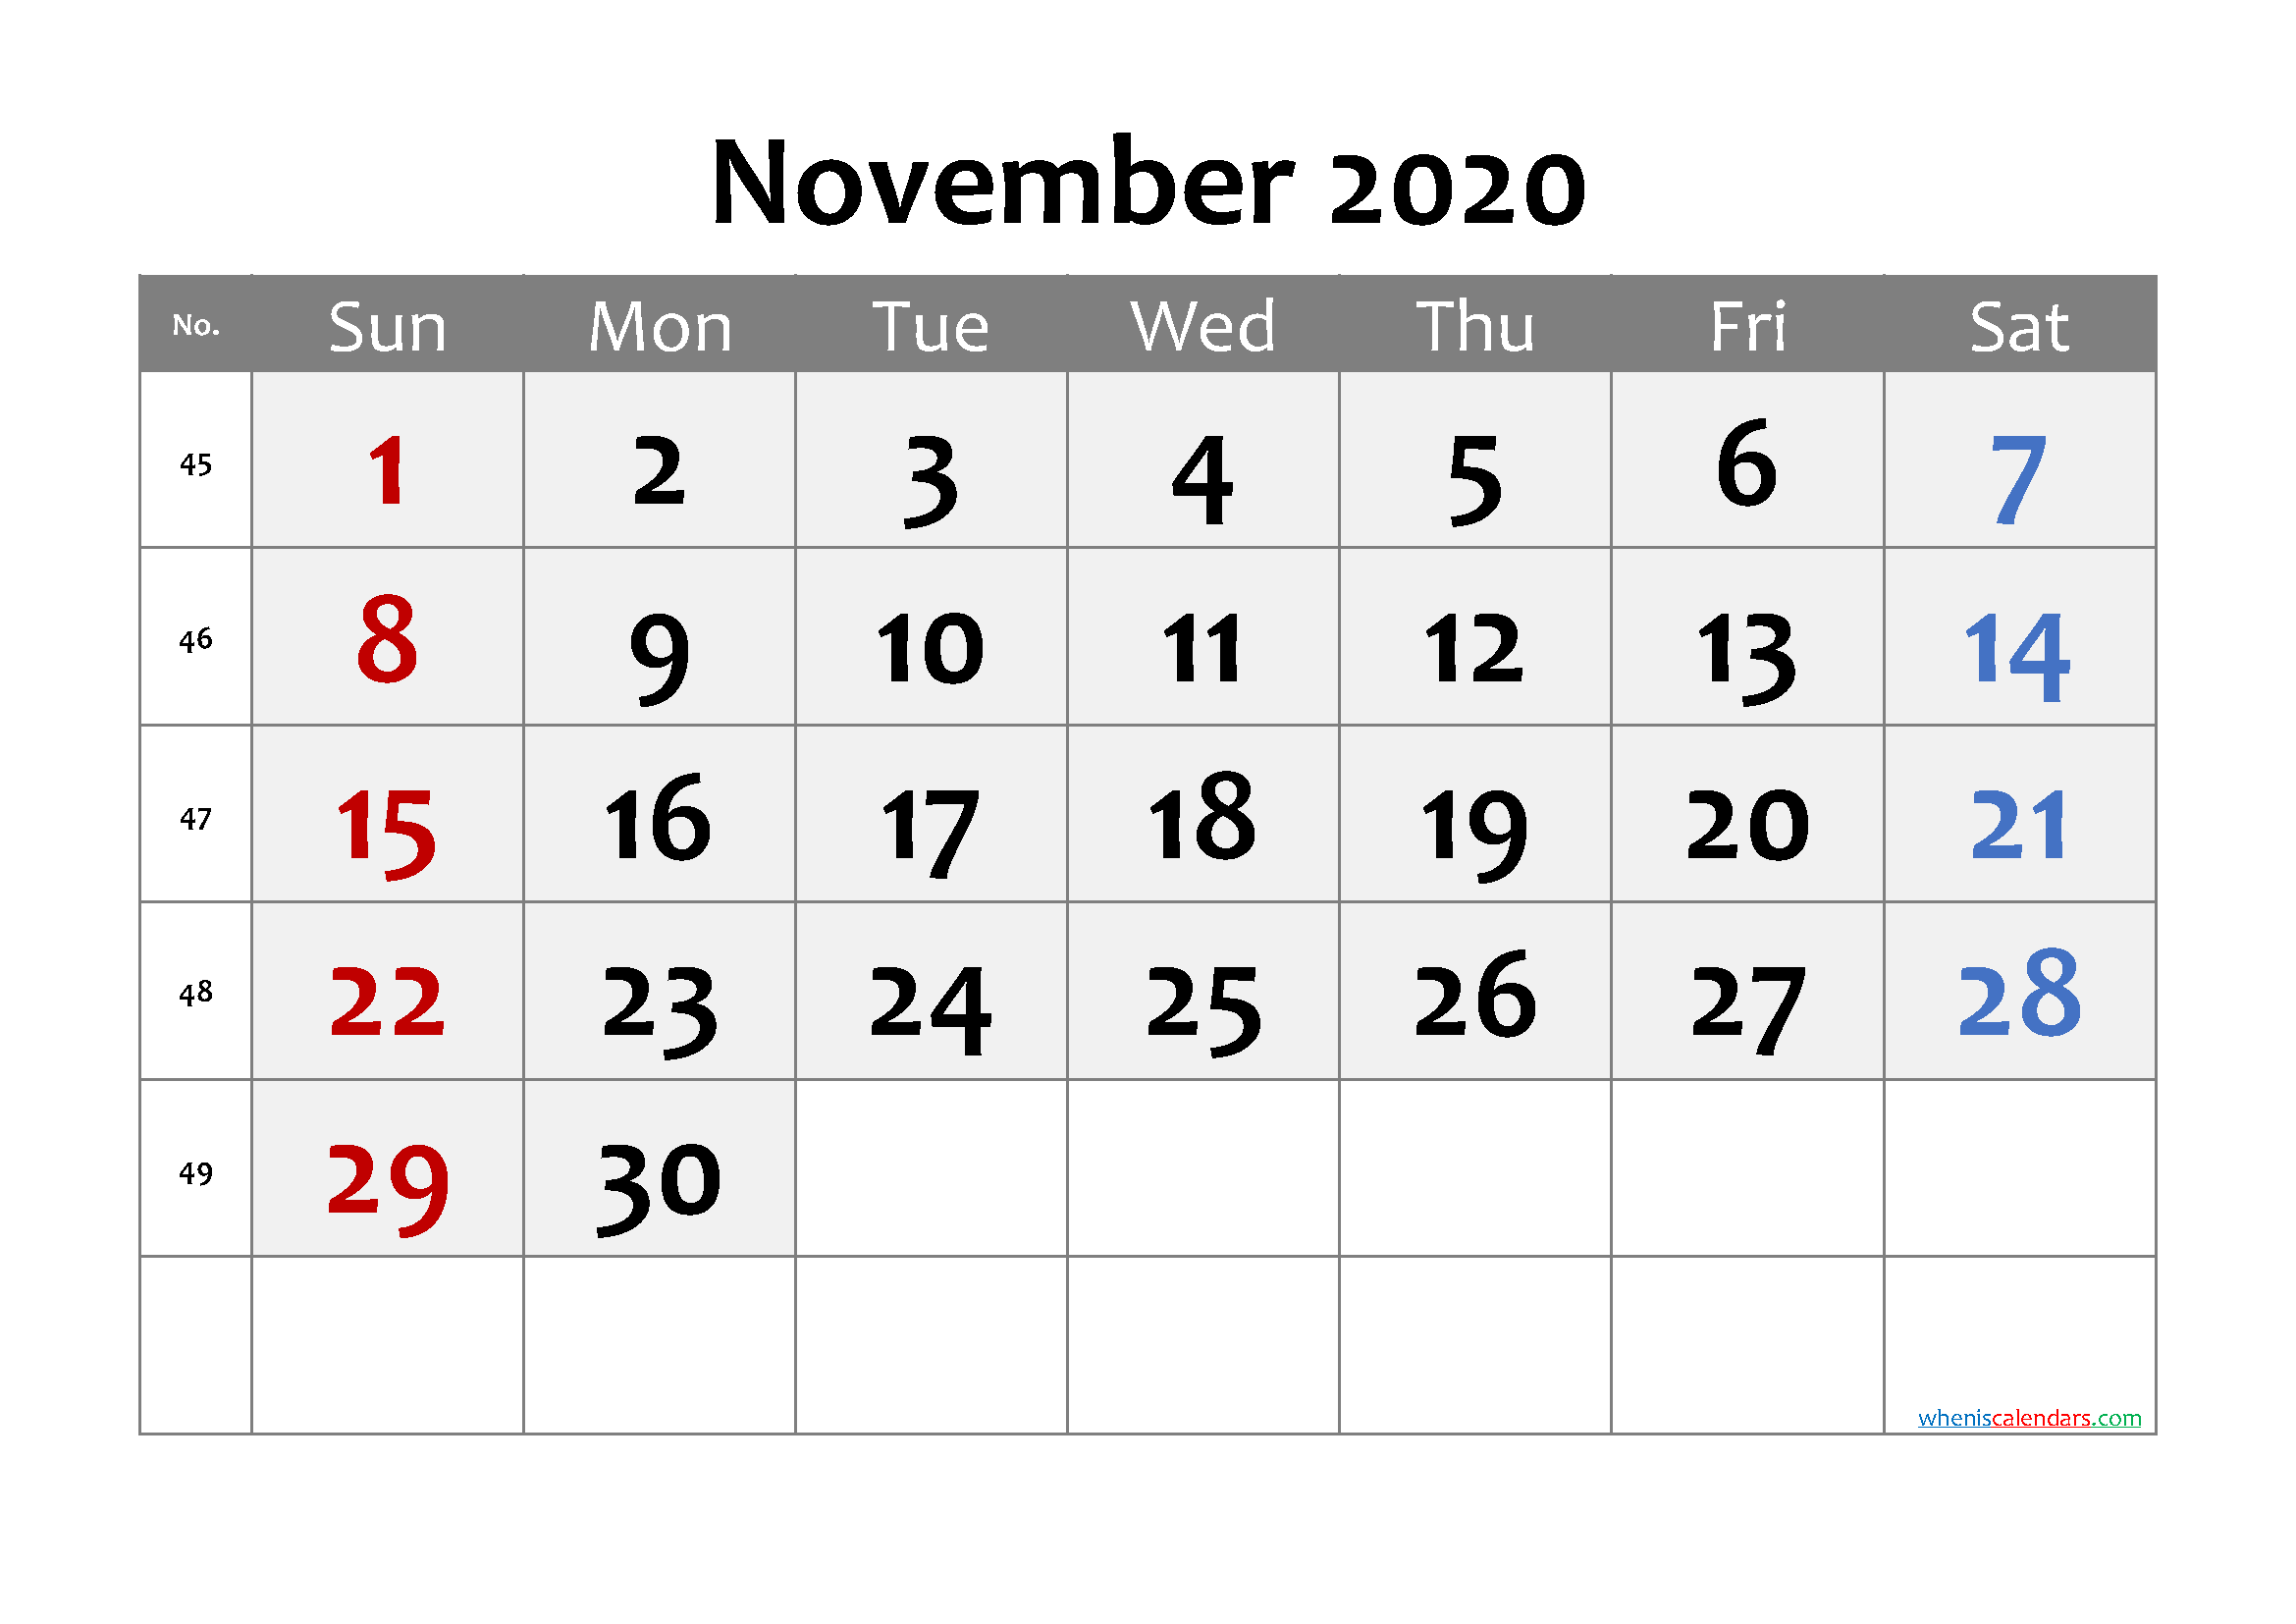 November 2020 Printable Calendar with Week Numbers